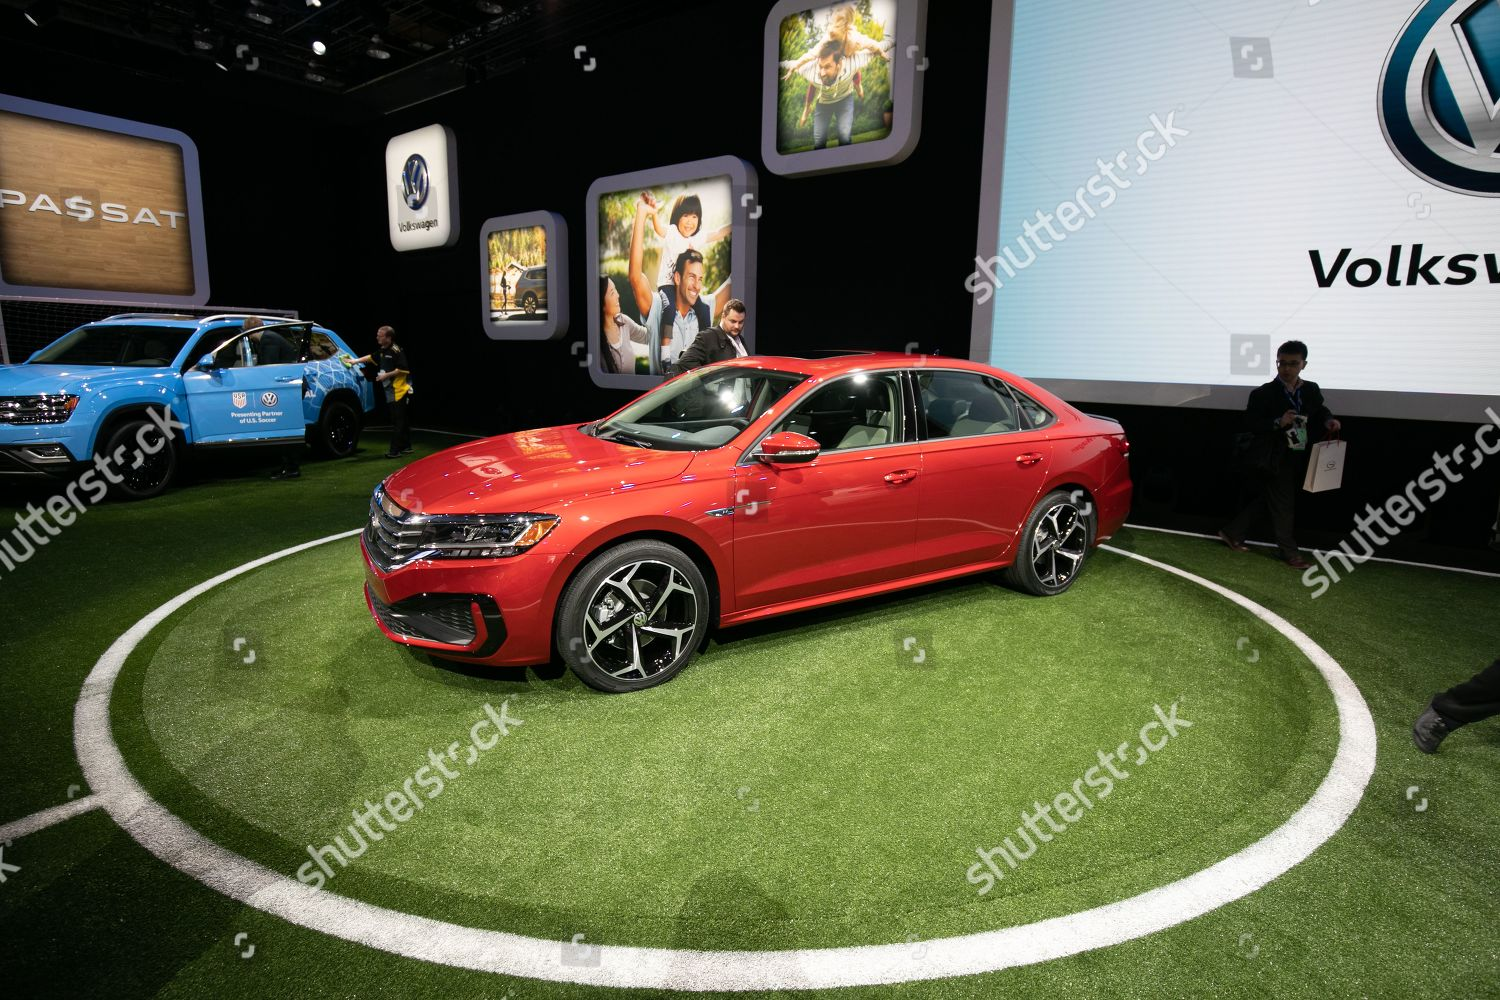 North American Auto Show 2020.Volkswagen 2020 Passat 2019 North American International